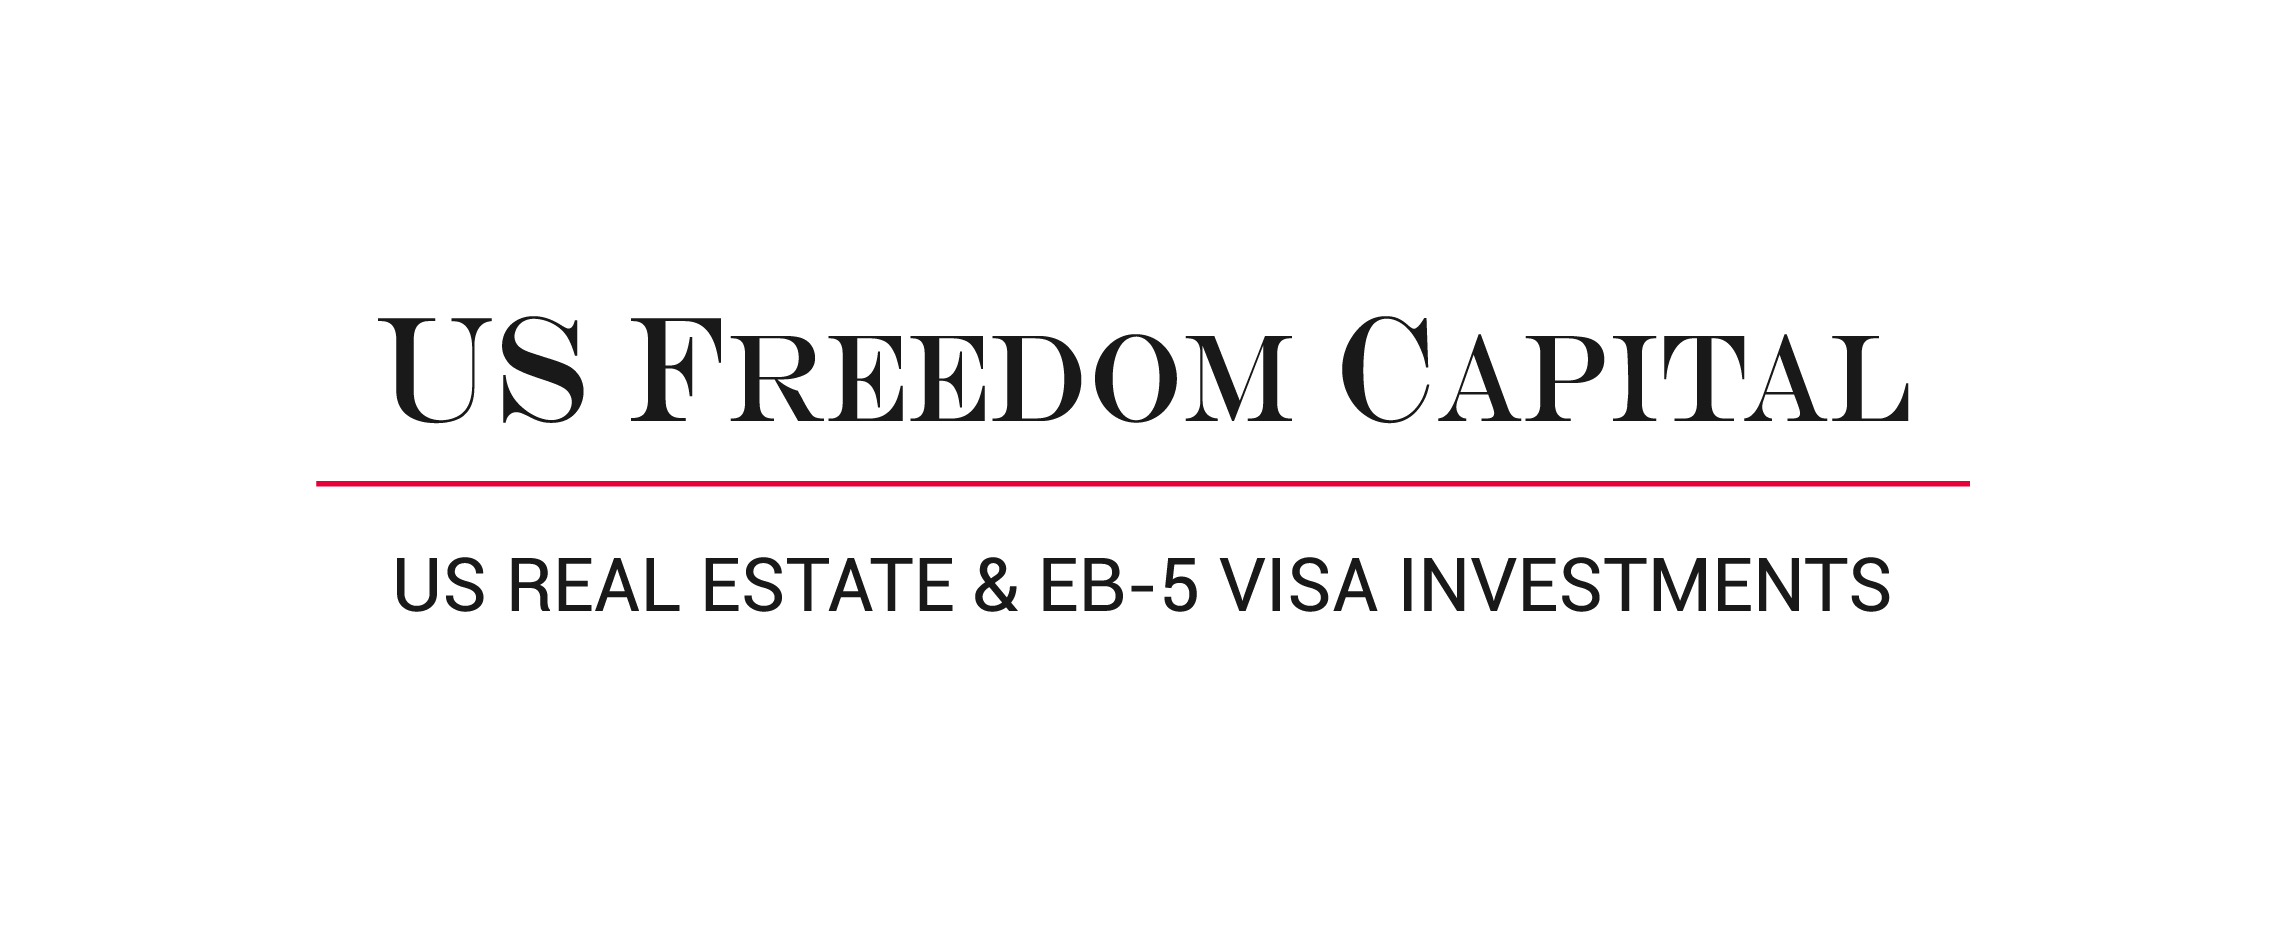 US Freedom Capital Logo with tagline